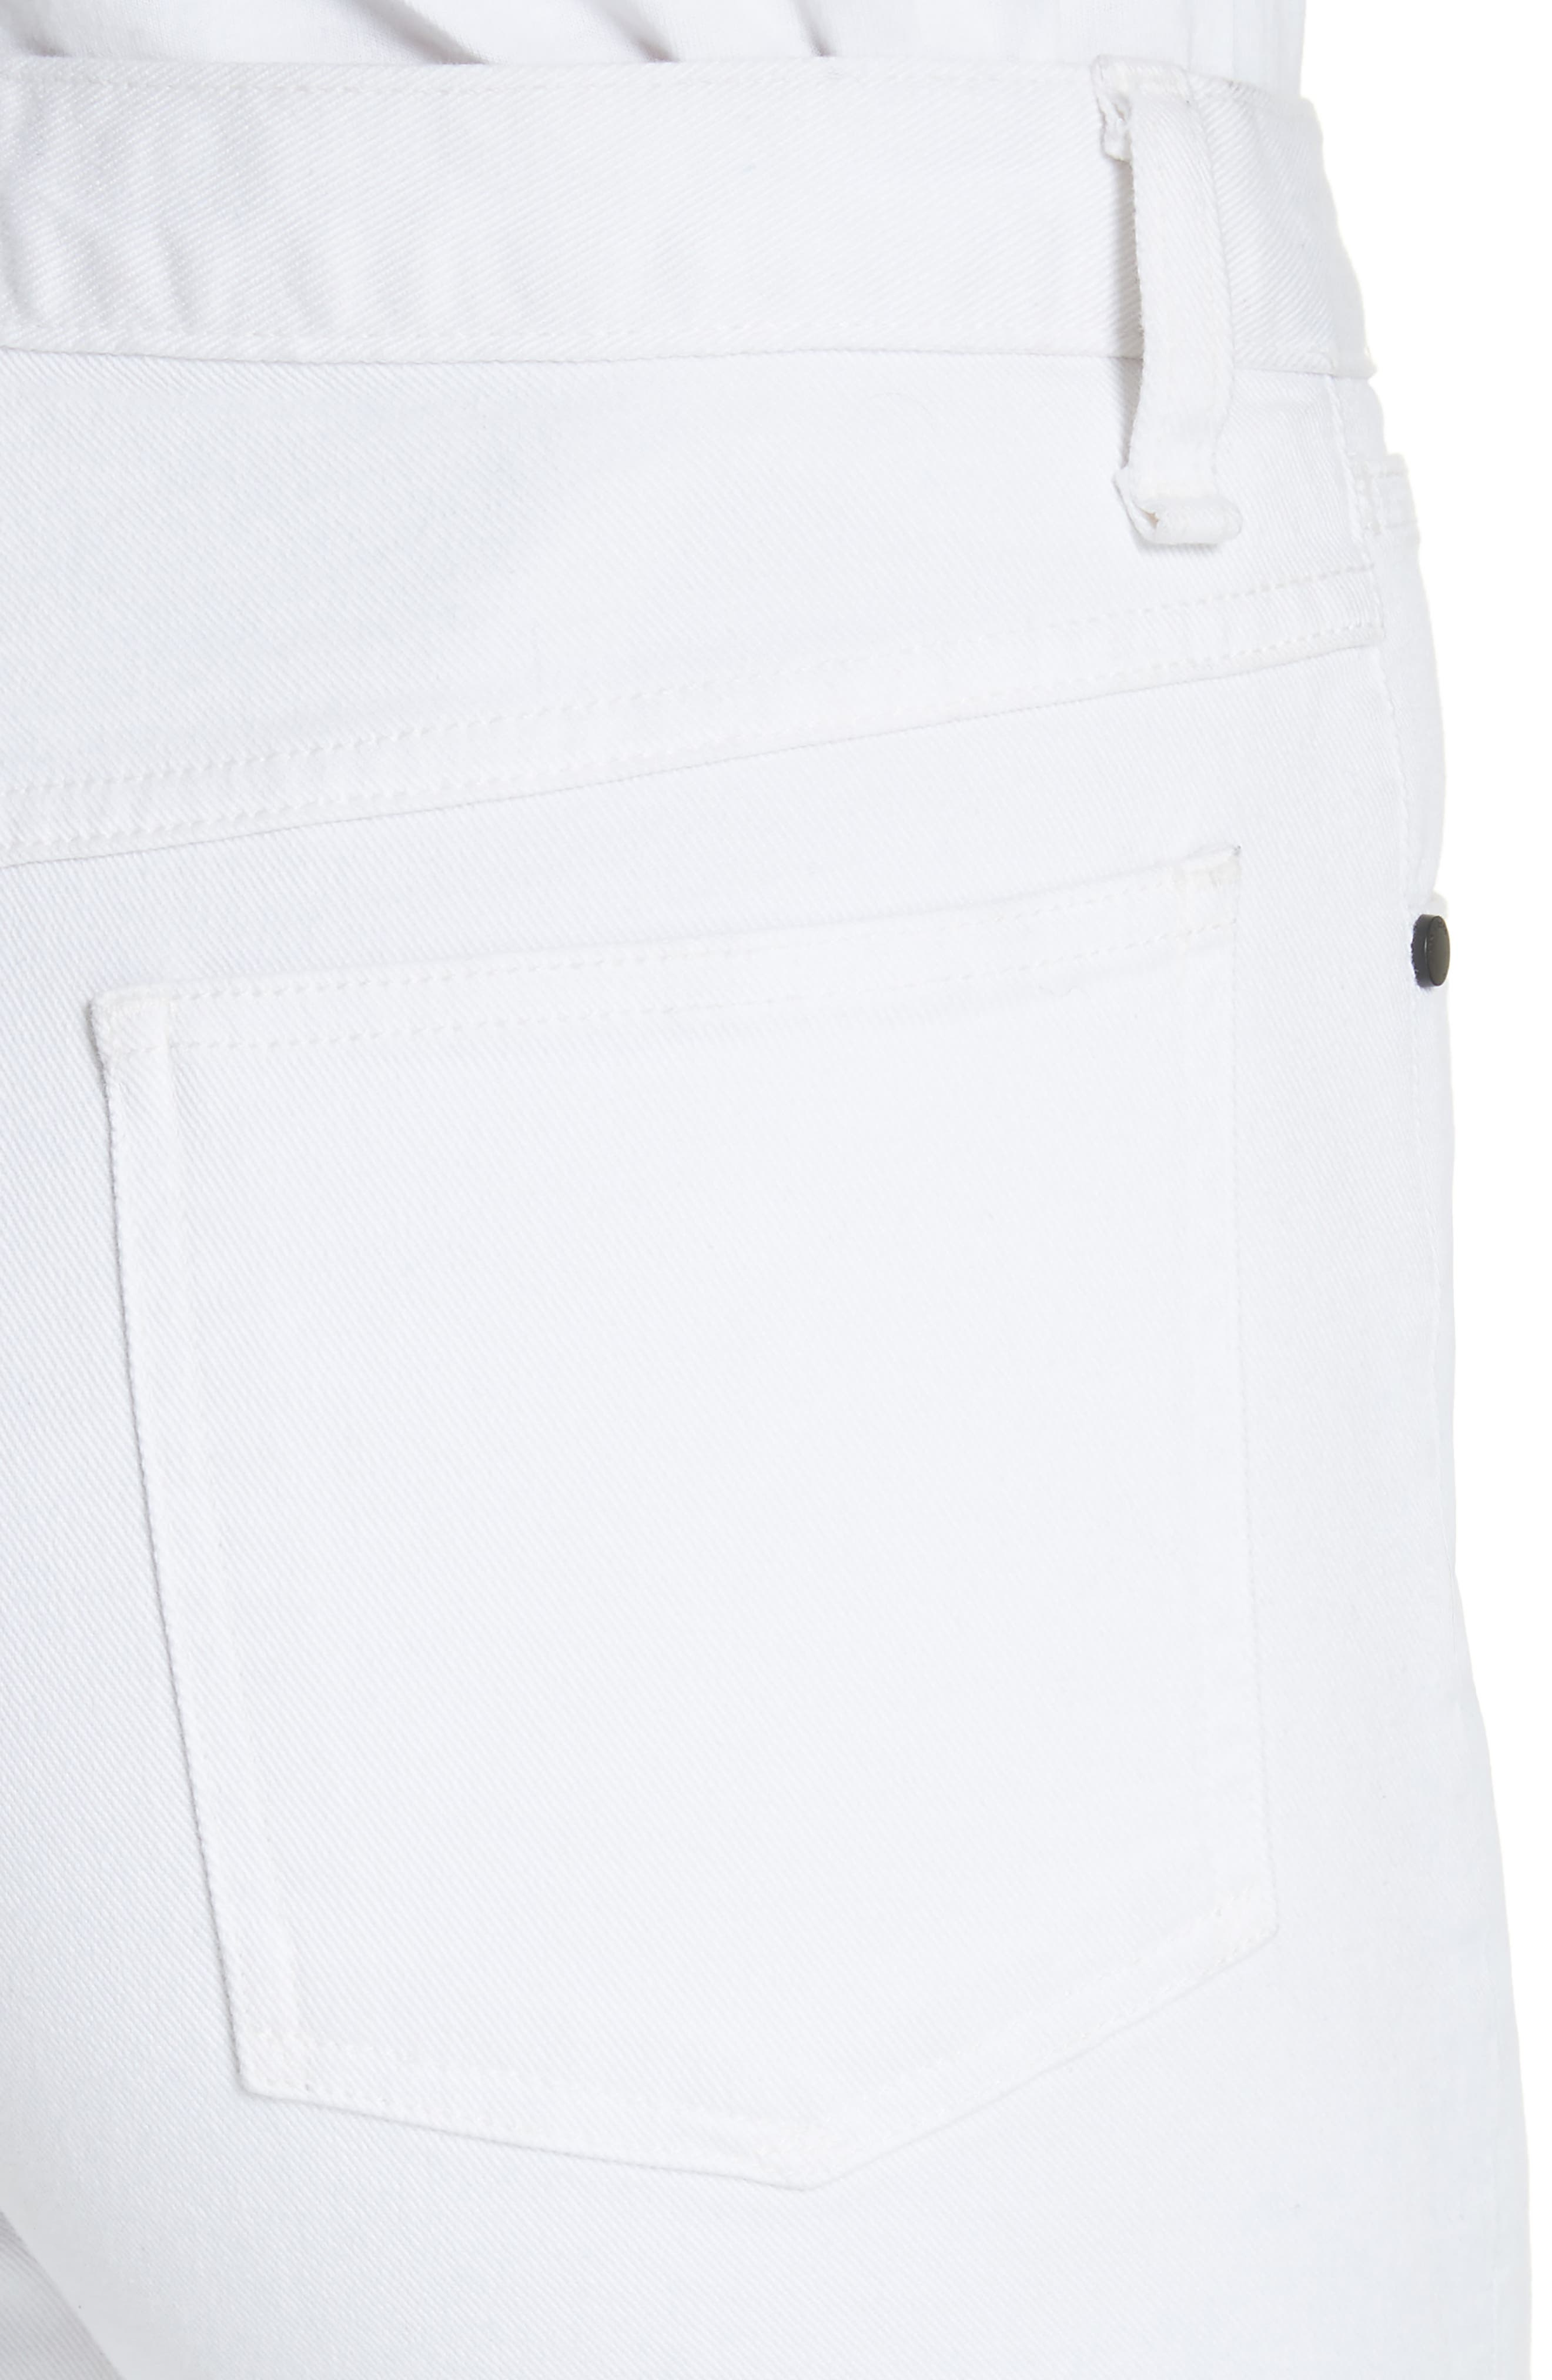 Justine High Waist Ankle Wide Leg Trouser Jeans,                             Alternate thumbnail 4, color,                             White